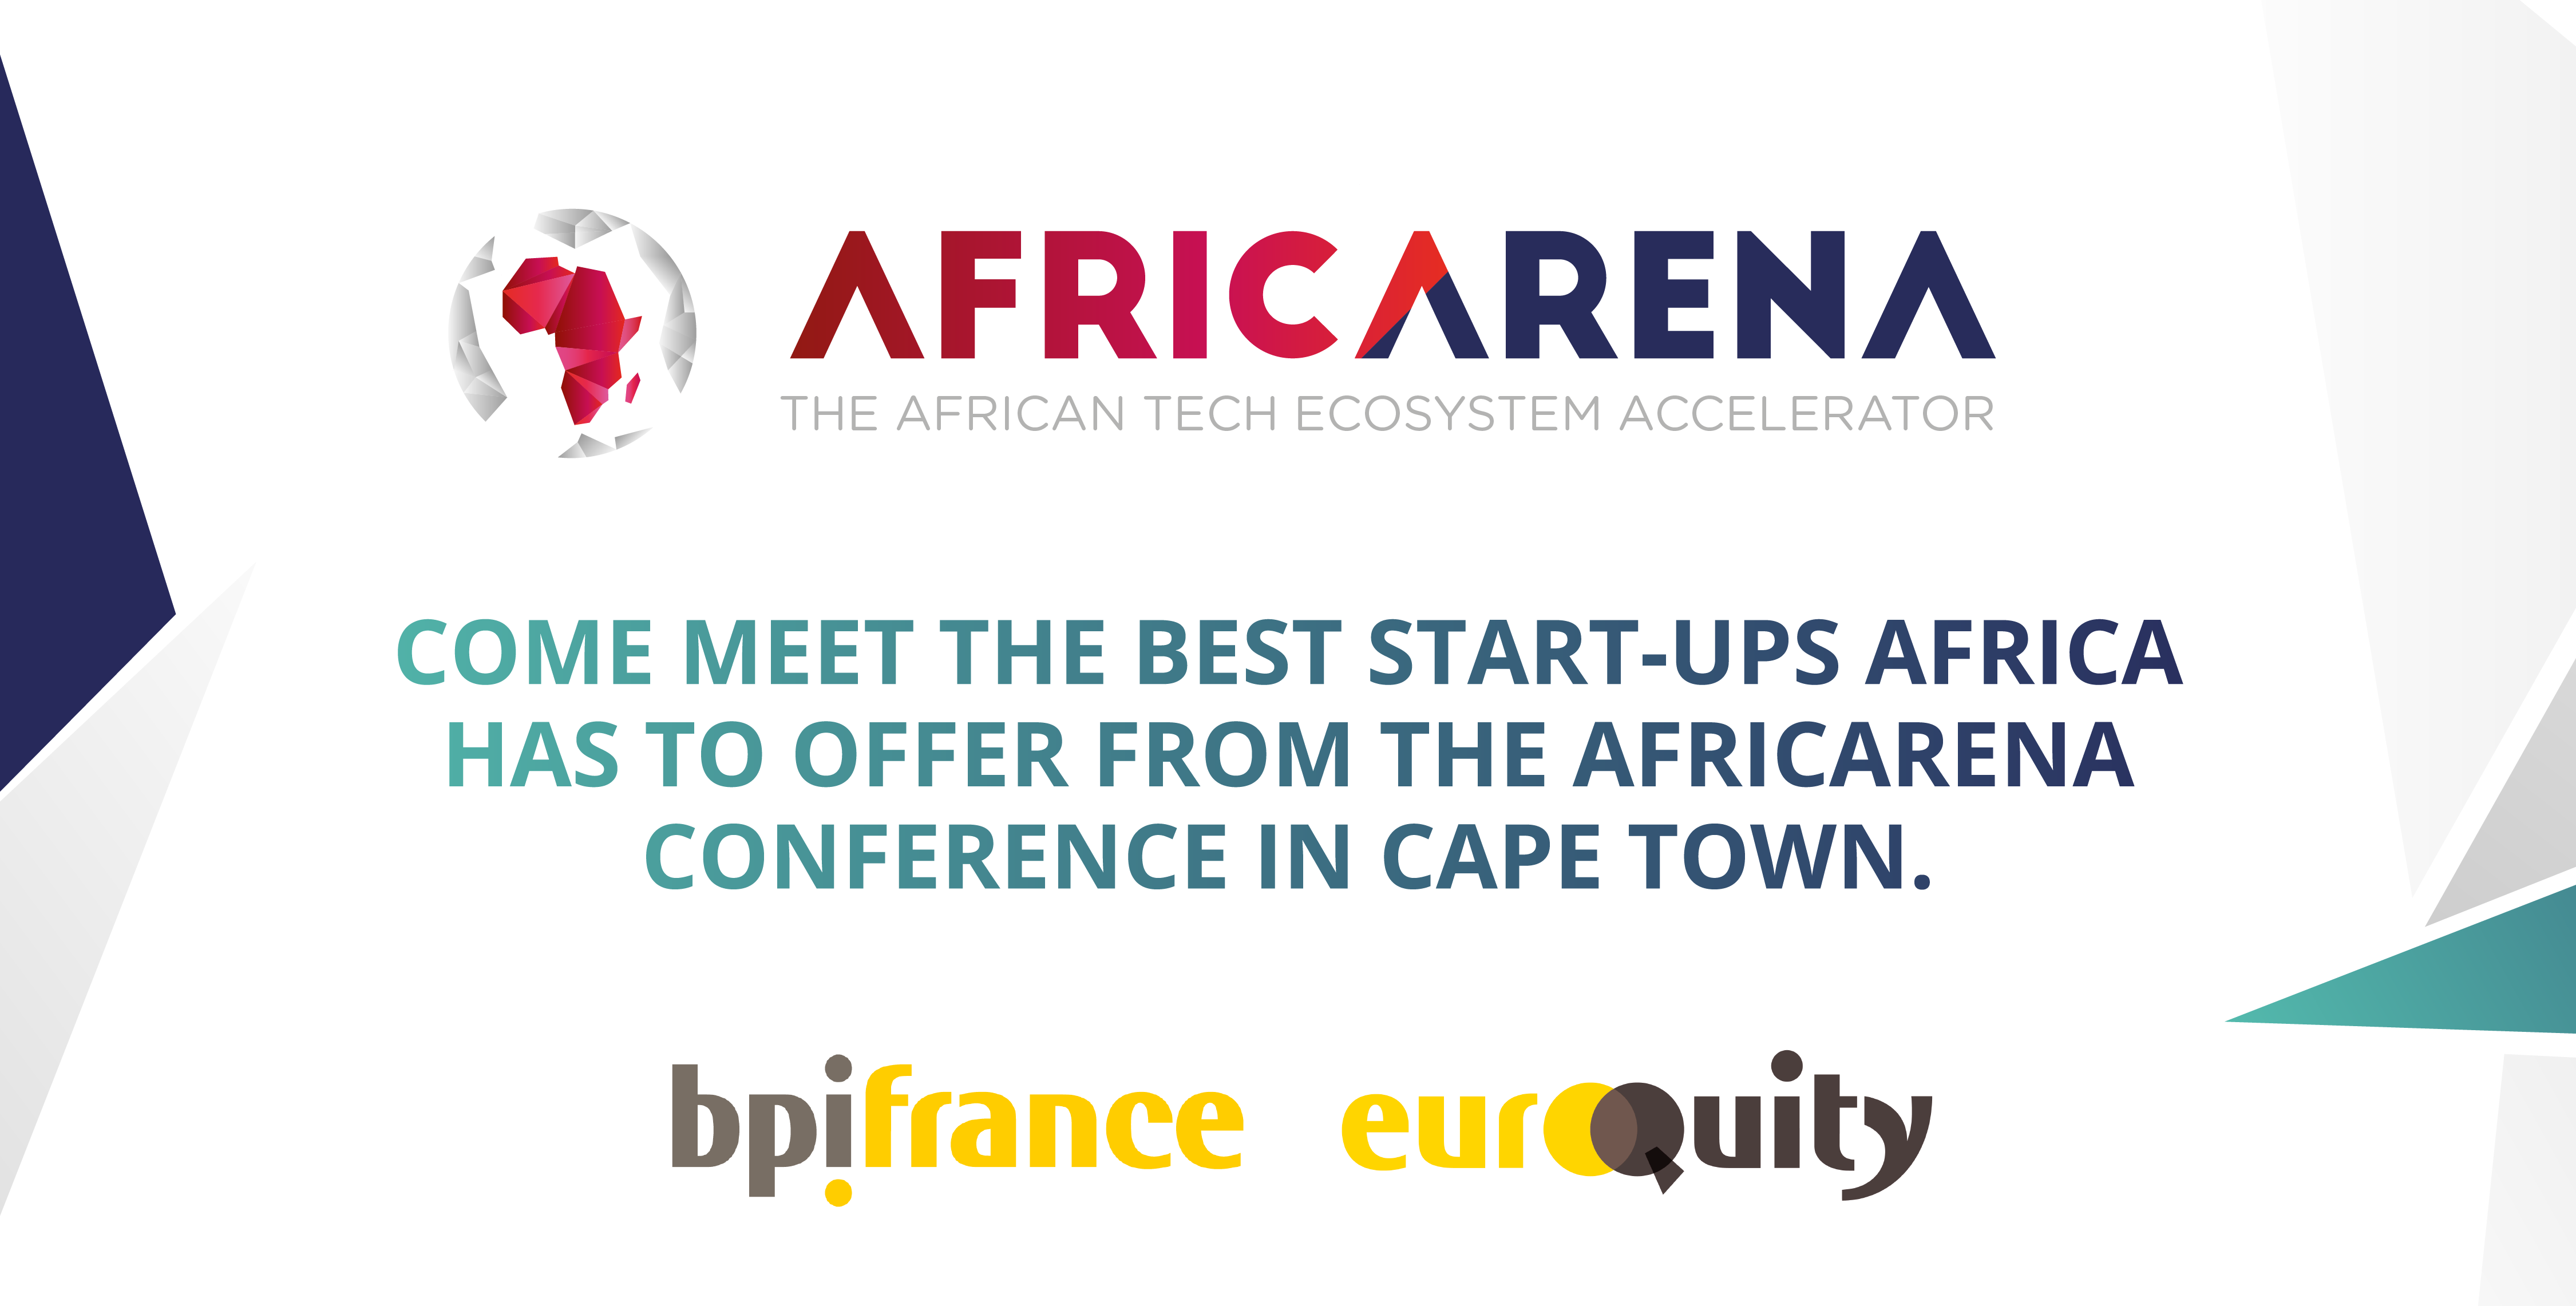 AfricArena replays : discover the best African startups !